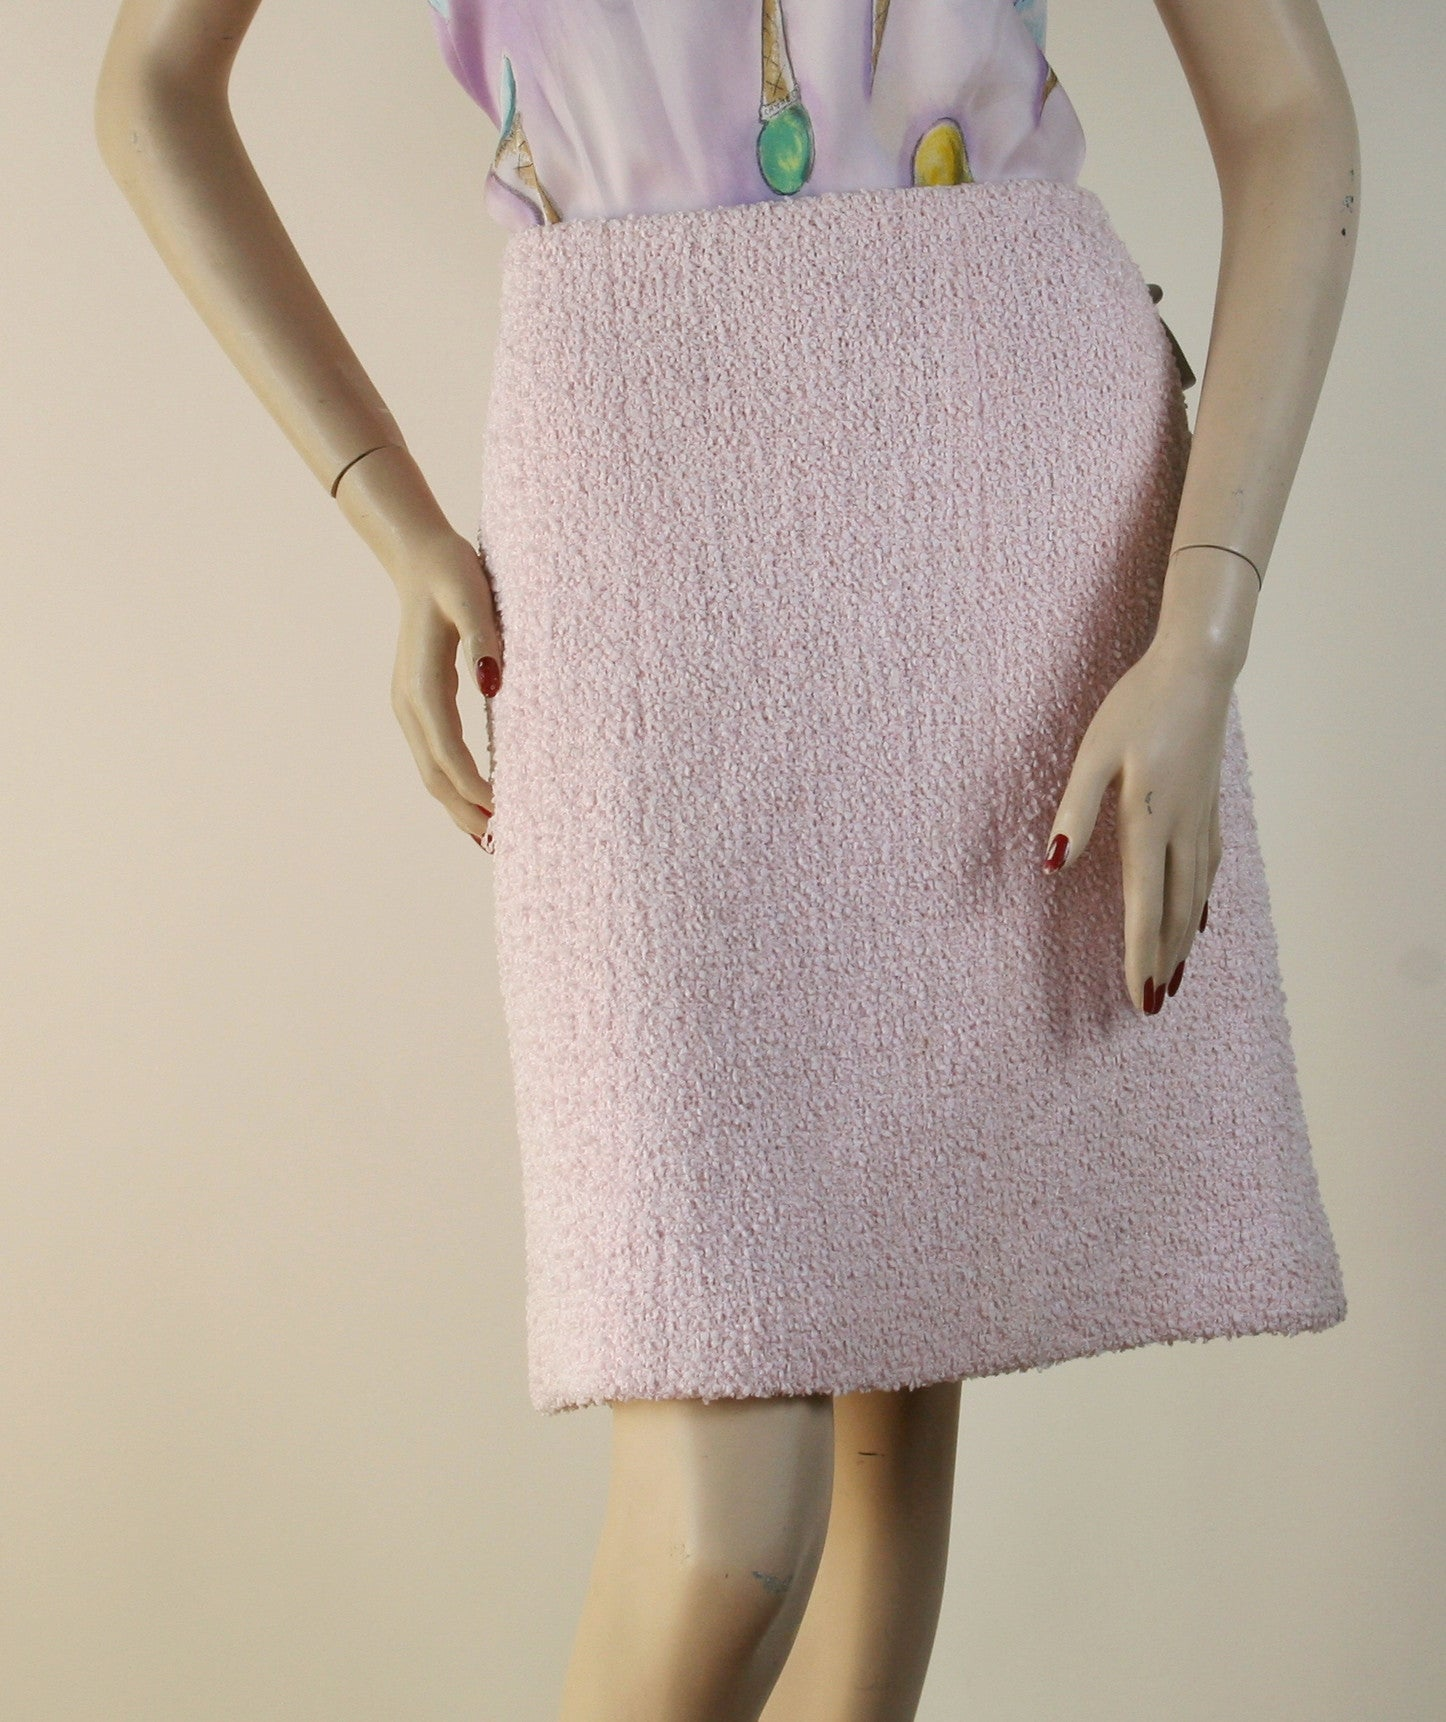 Chanel Tweed Pink Skirt Size 10/12